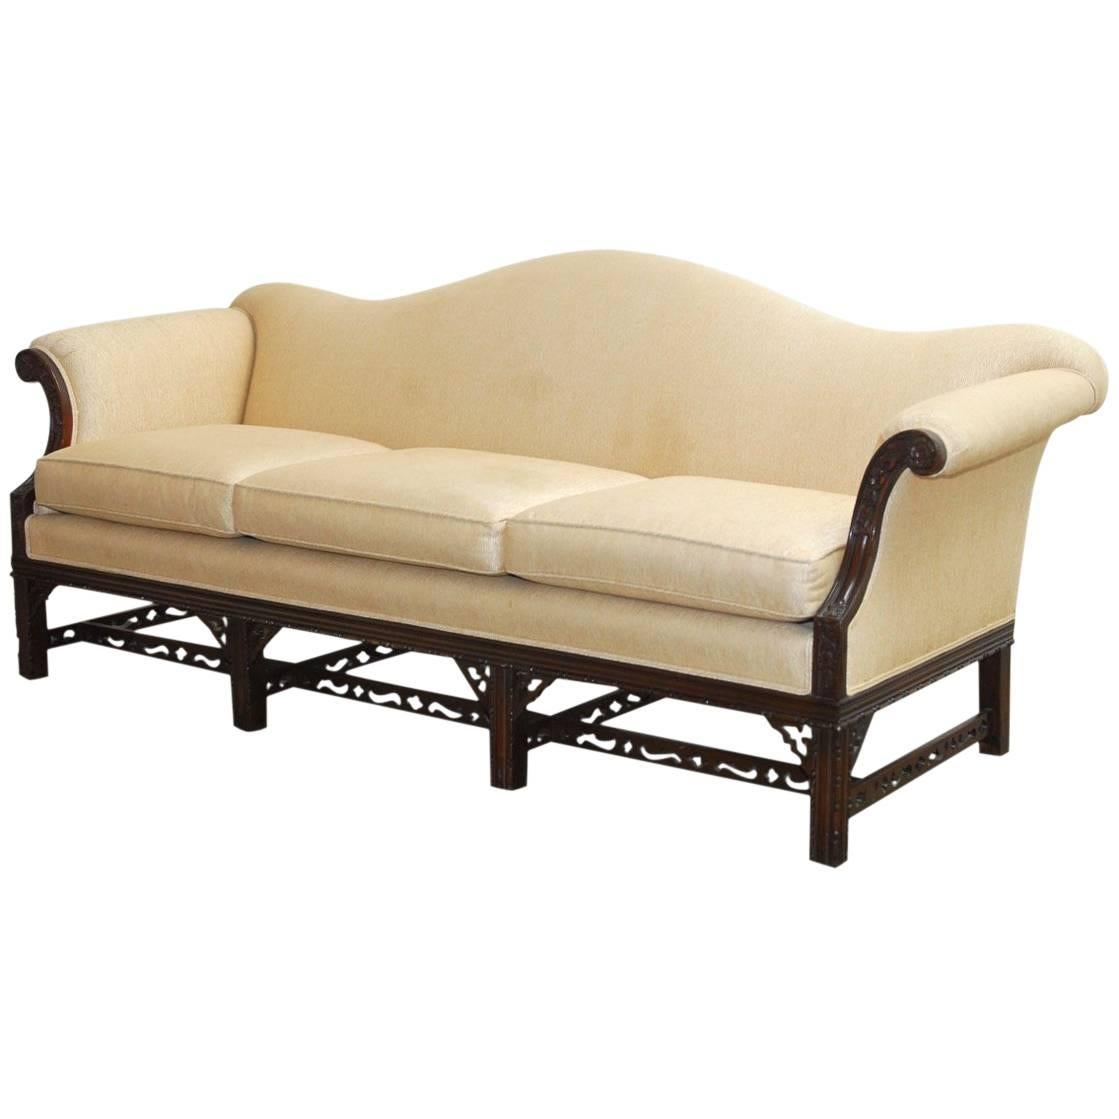 Delicieux Chinese Chippendale Style Carved Mahogany Camelback Sofa